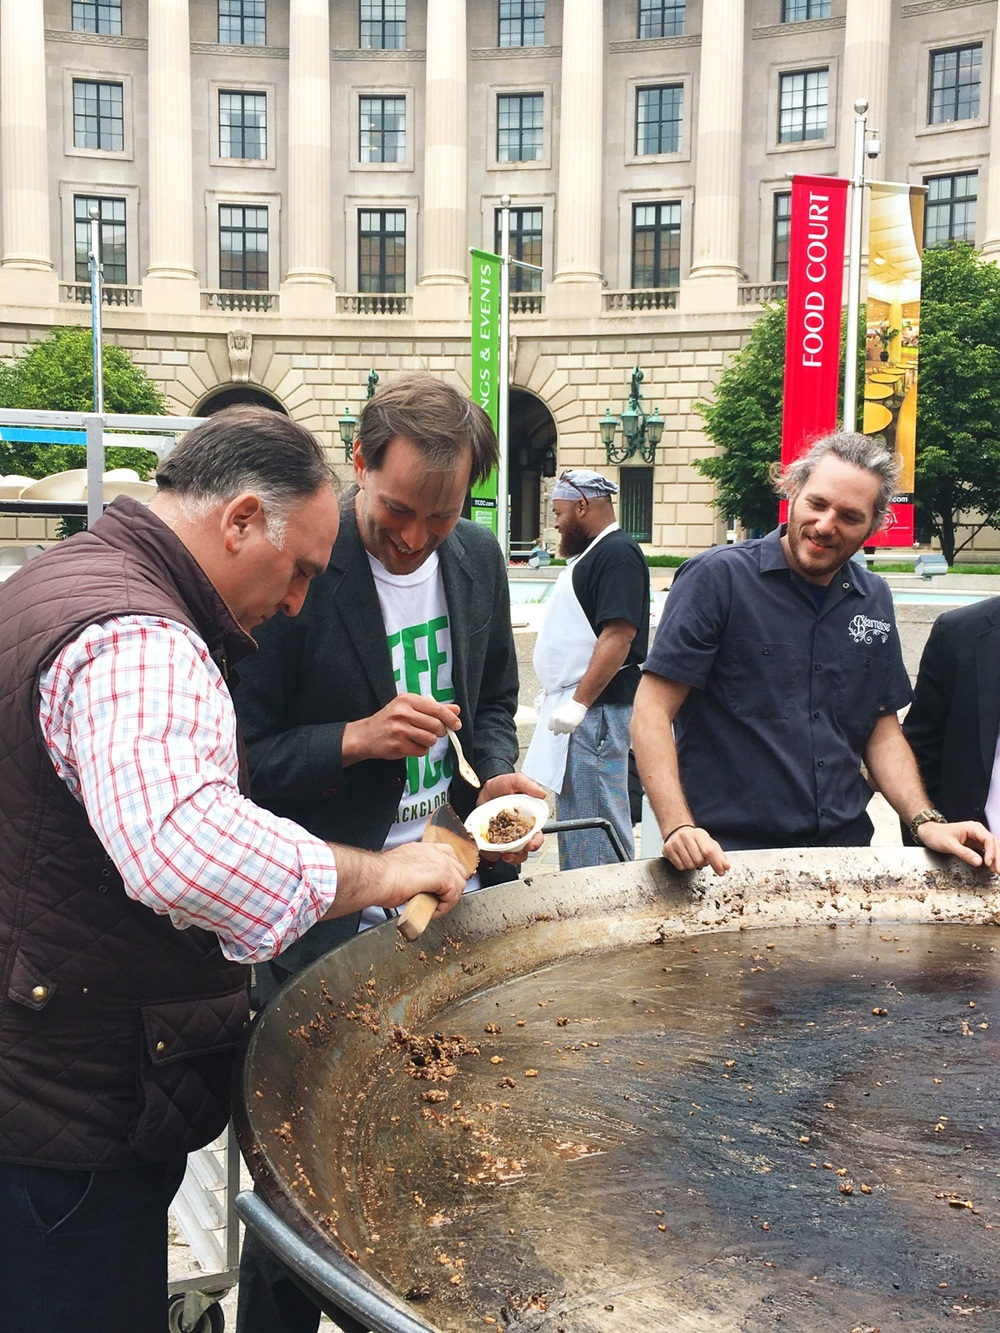 Chef José Andrés (Think Food Group), Tristram Stuart (Feedback) & Chef Spike finish up the last of the paella at Feeding the 5,000 D.C.